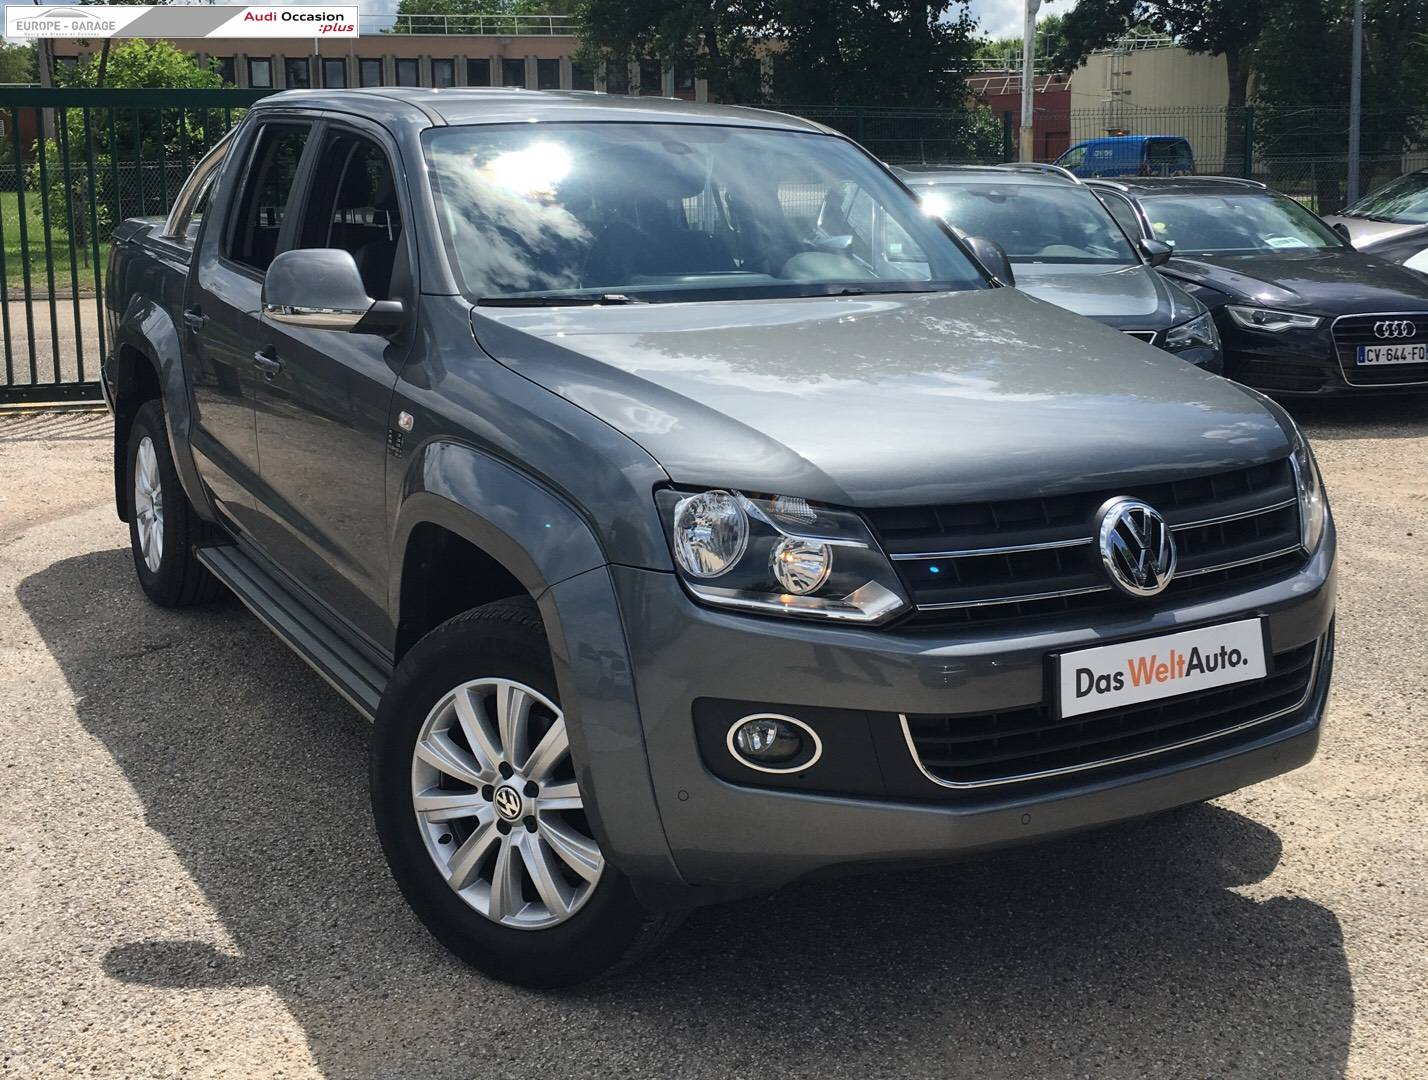 1 - AMAROK DOUBLE CAB 2.0 TDI 180 FAP 4MOTION (PERMANENT)